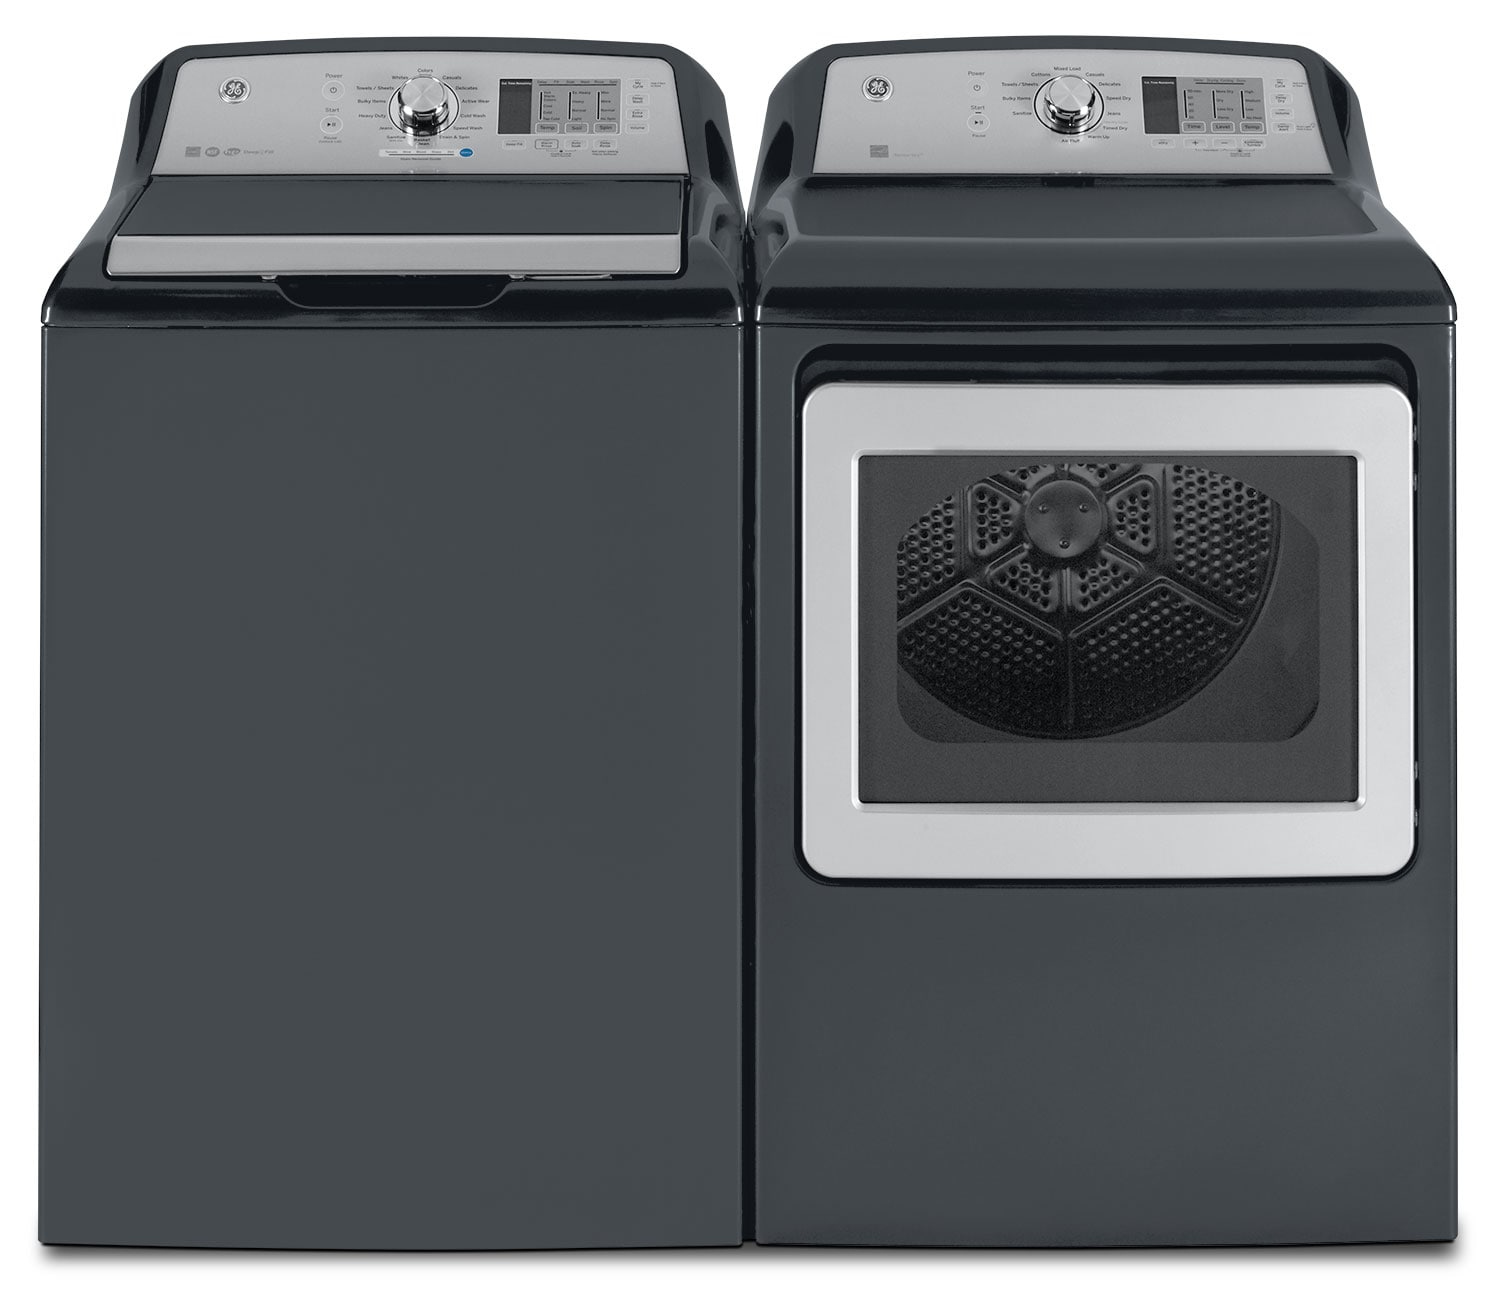 Uncategorized Kitchen Appliances Montreal appliances the brick ge 5 3 cu ft top load washer and 7 4 ft